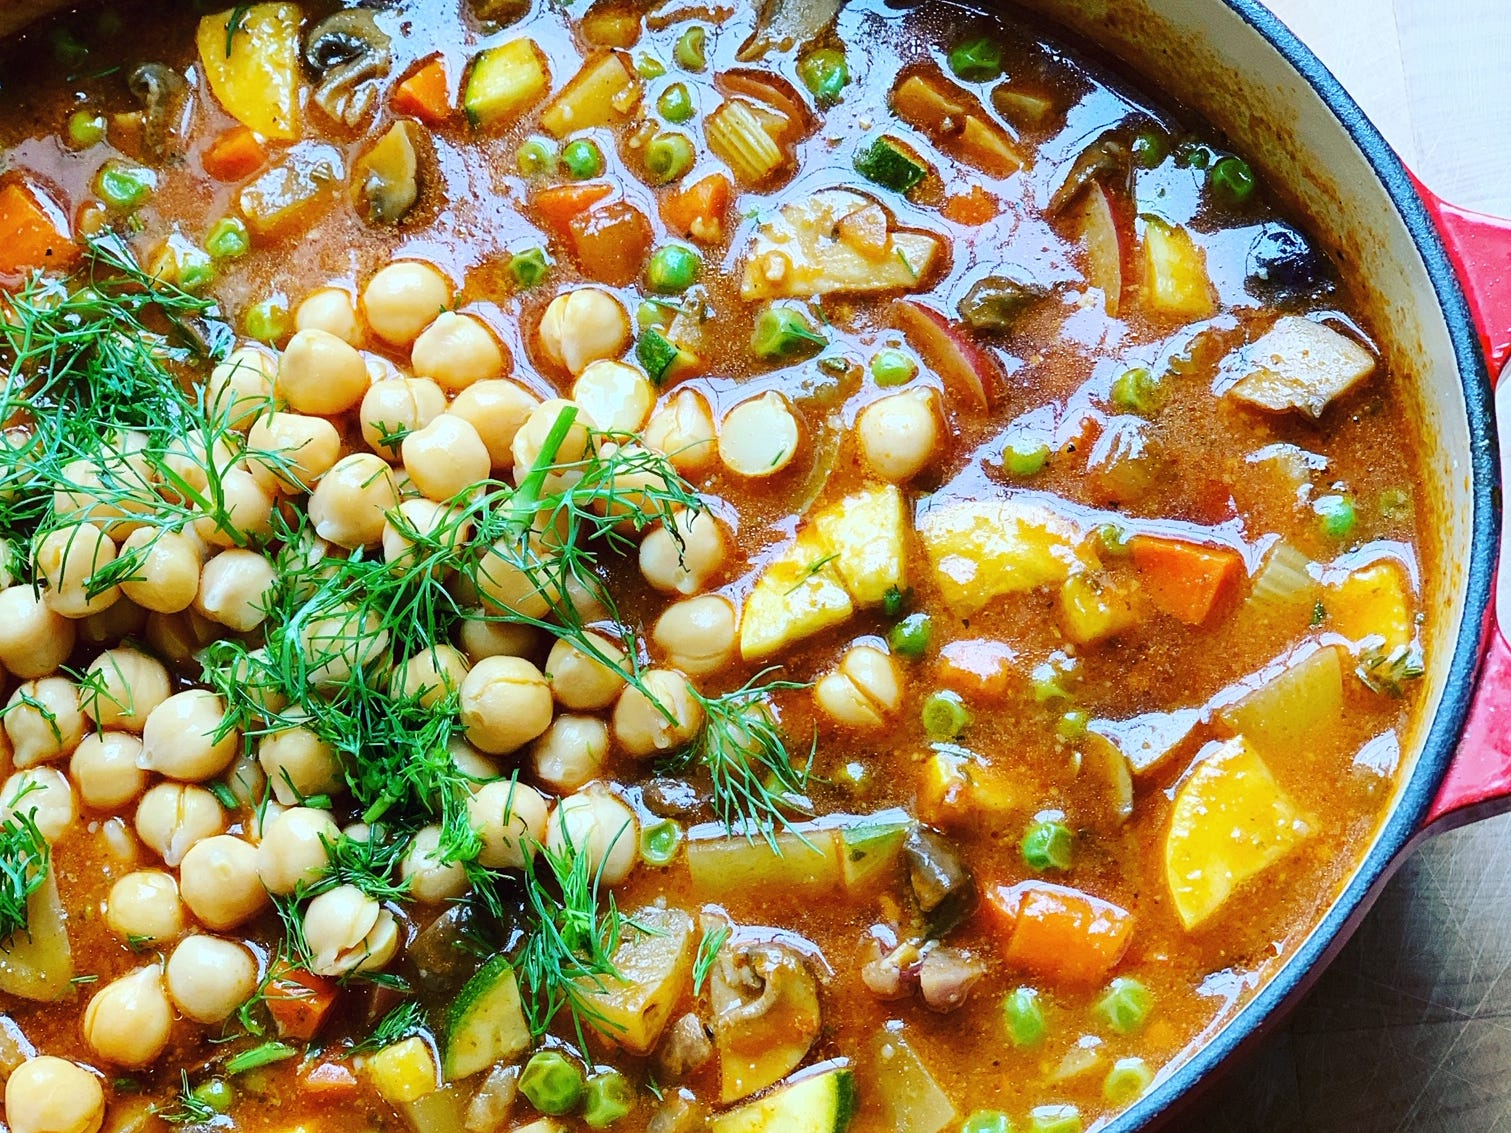 SimpleEats MKE works with clients who follow a variety of diets, including vegan, as in this vegan stew.